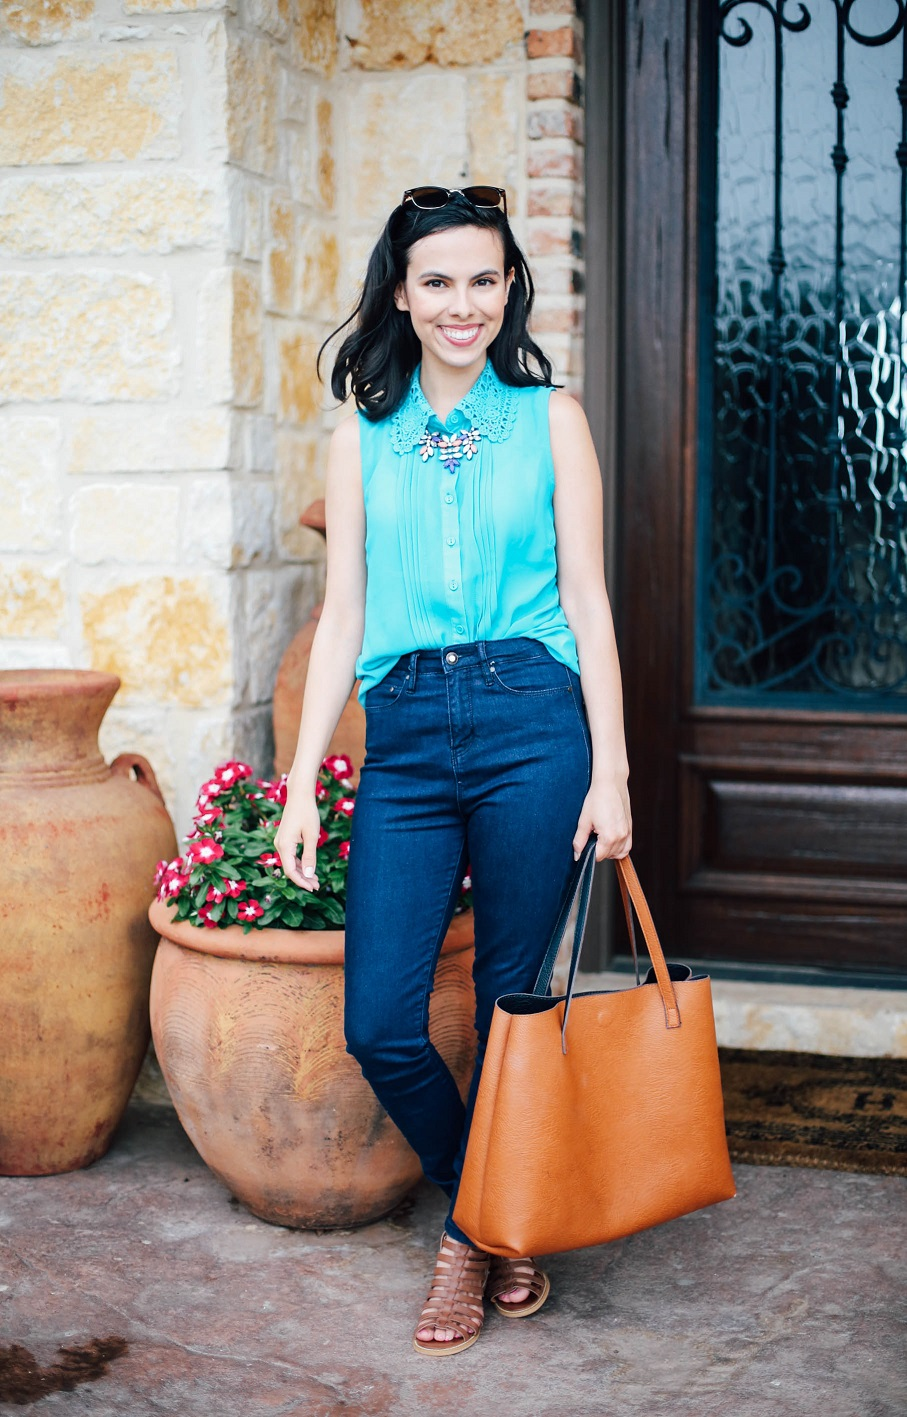 austin texas, austin fashion blog, austin fashion blogger, austin fashion, austin fashion blog, high waist jeans, statement necklace, floral statement necklace, happiness boutique, casual summer outfit, nordstrom reversible tote bag